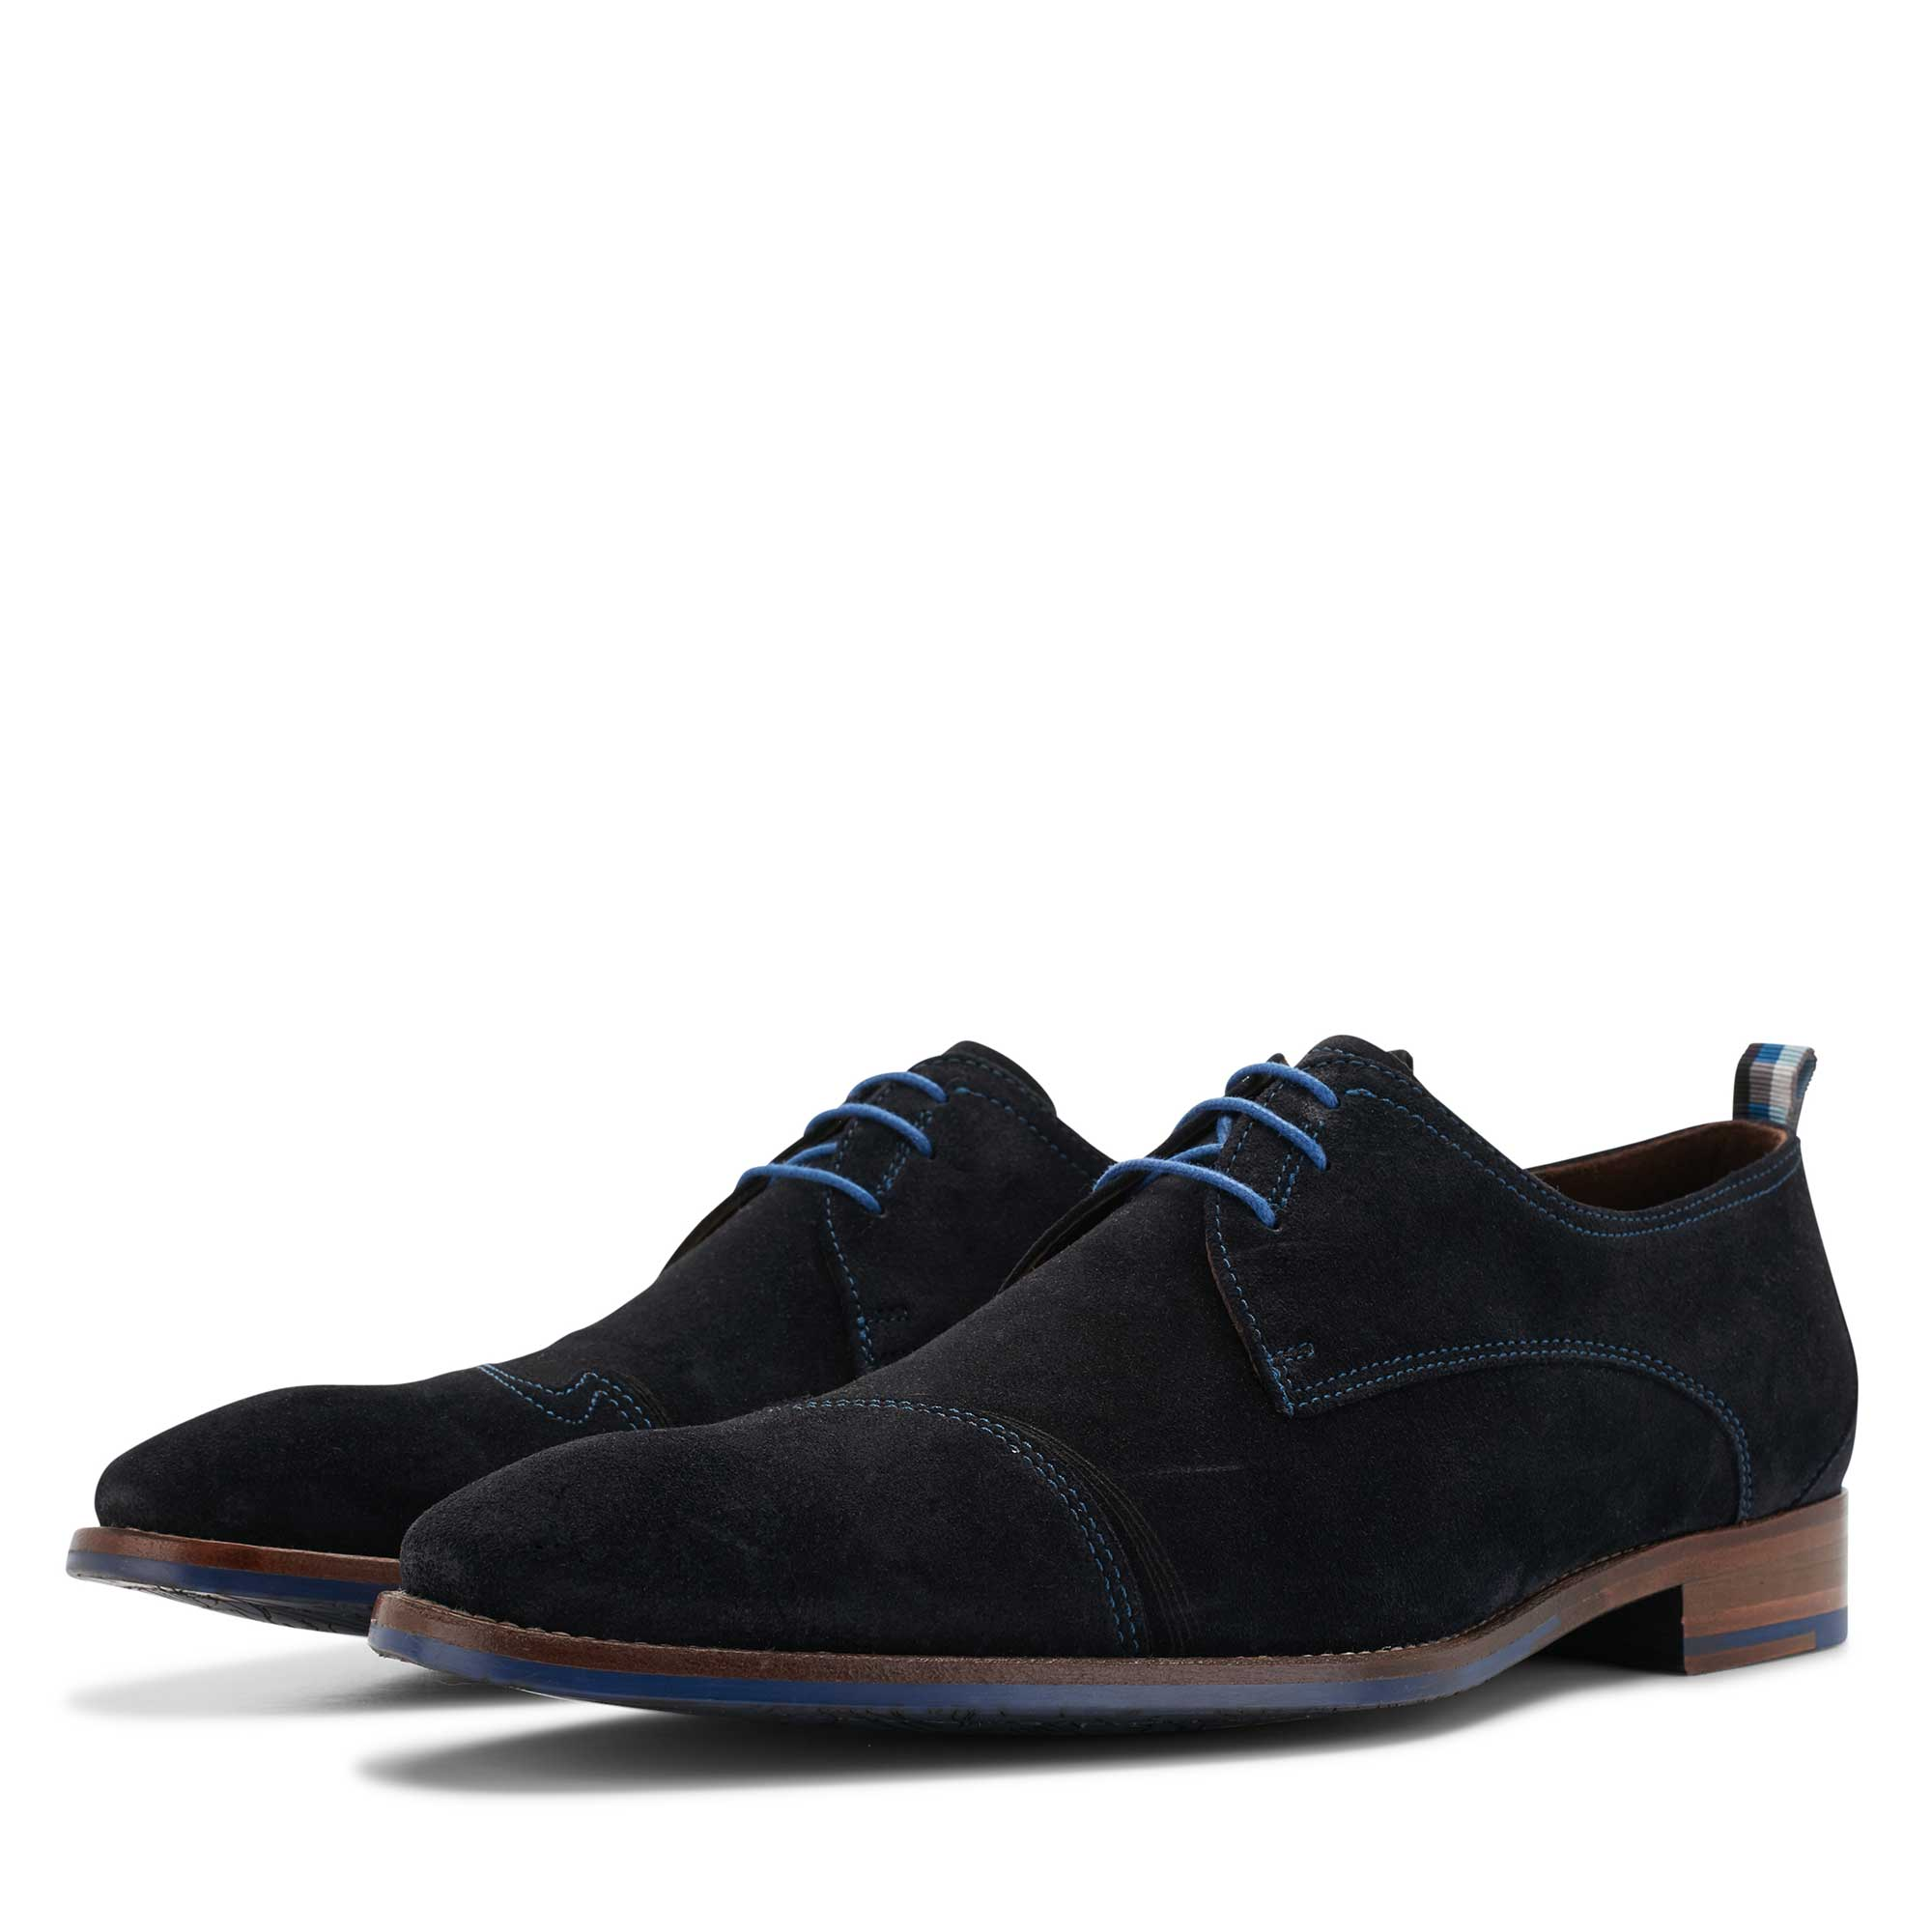 18006/04 - Floris van Bommel blue men's suede lace shoe